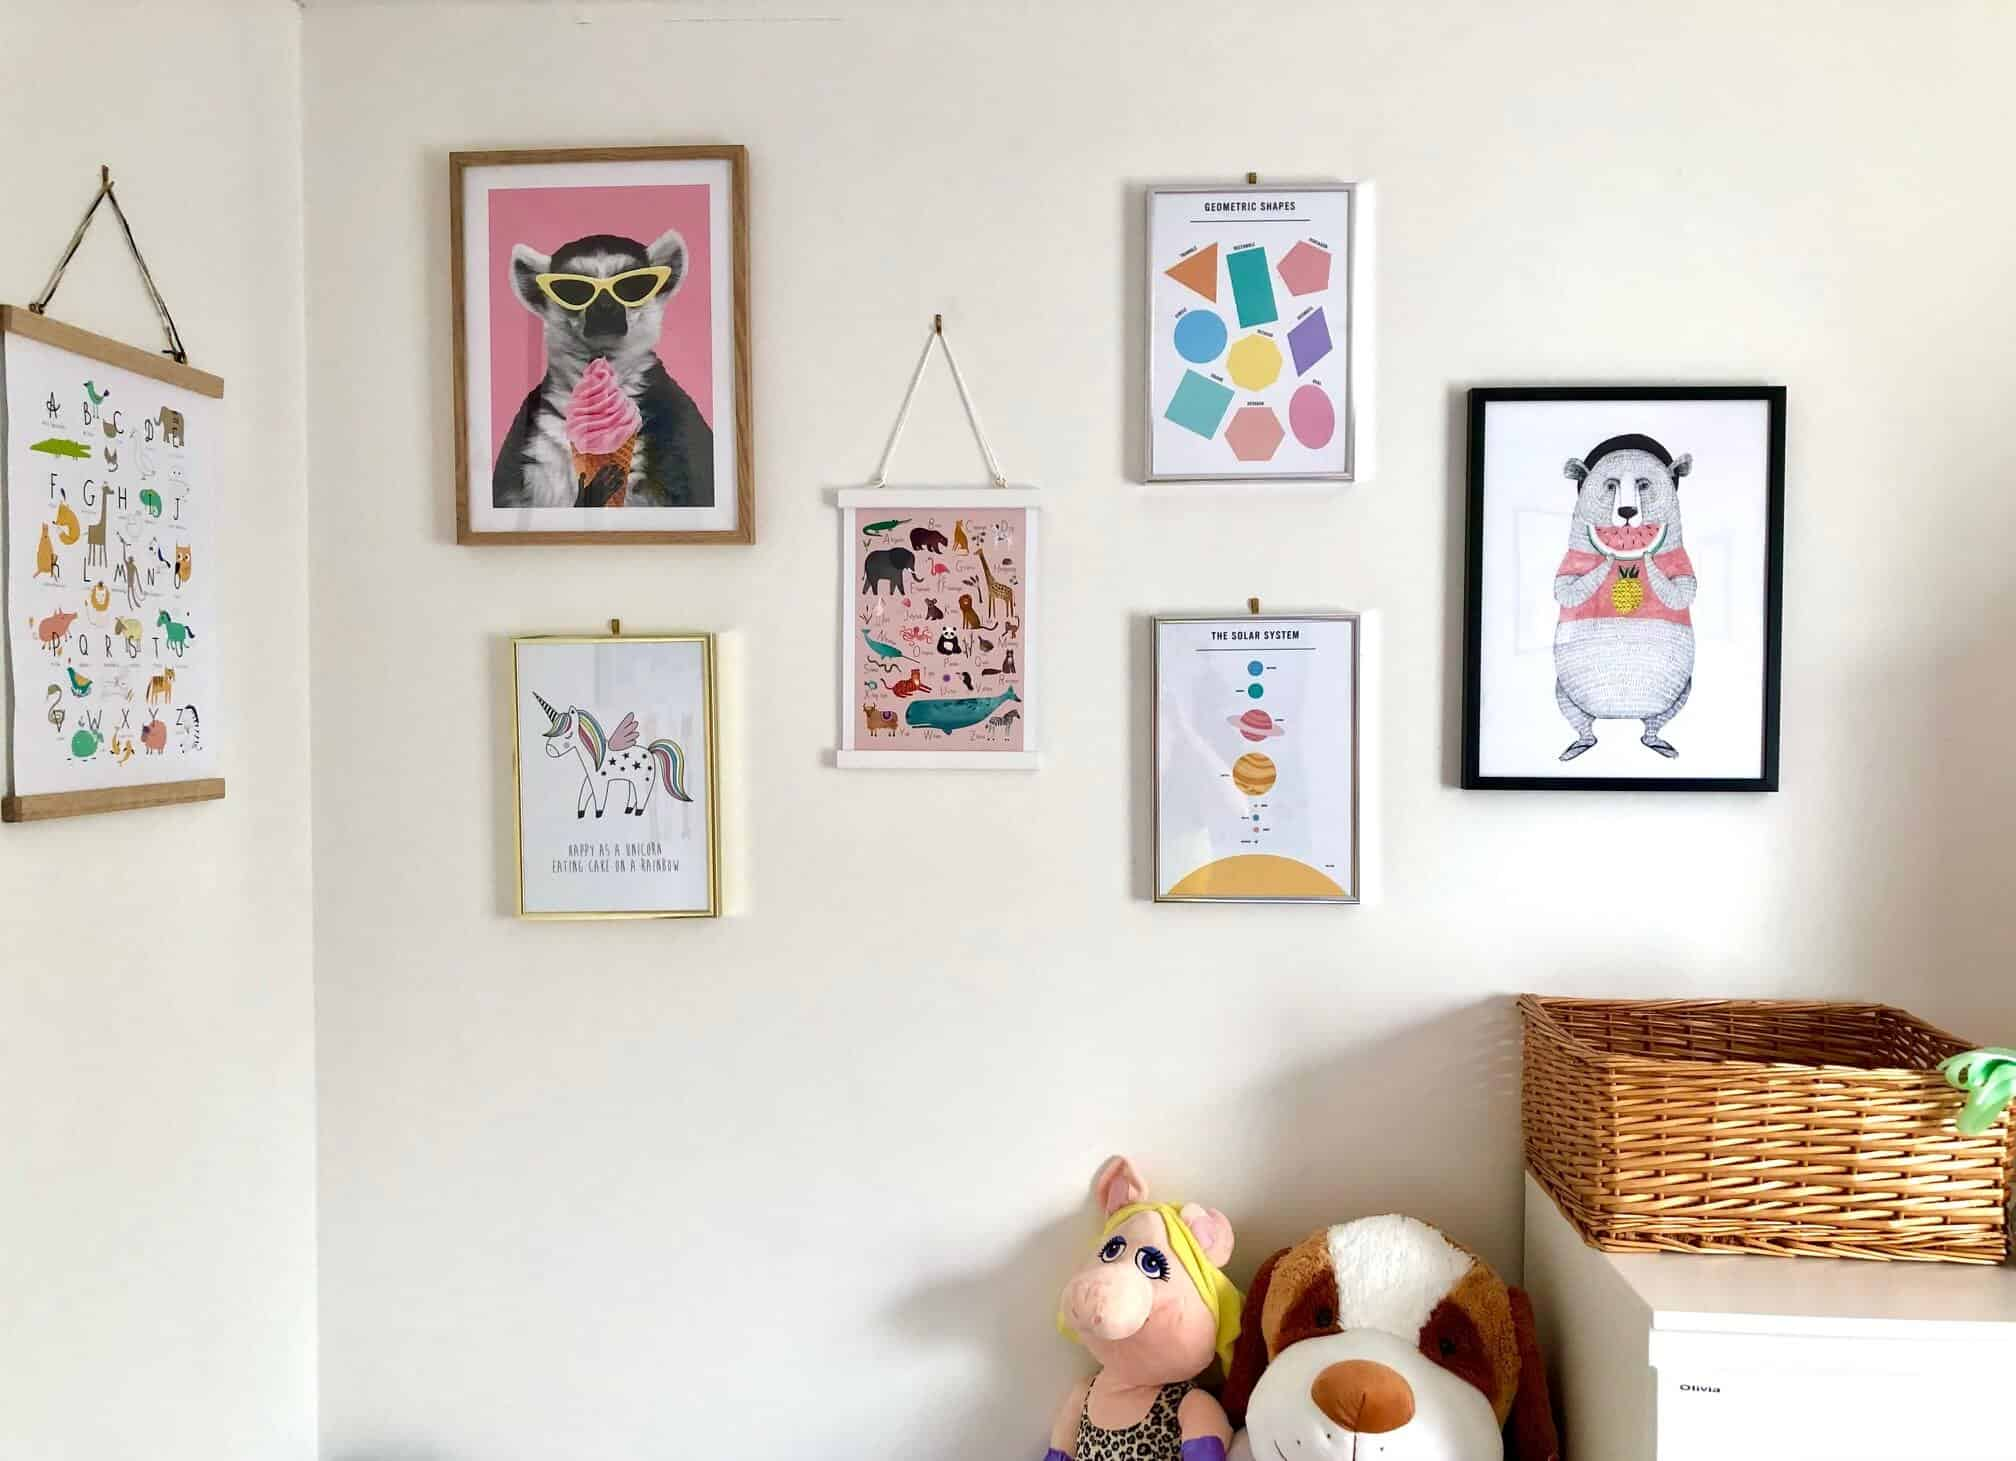 Fantastic Wall Art Ideas For a Kid's Bedroom